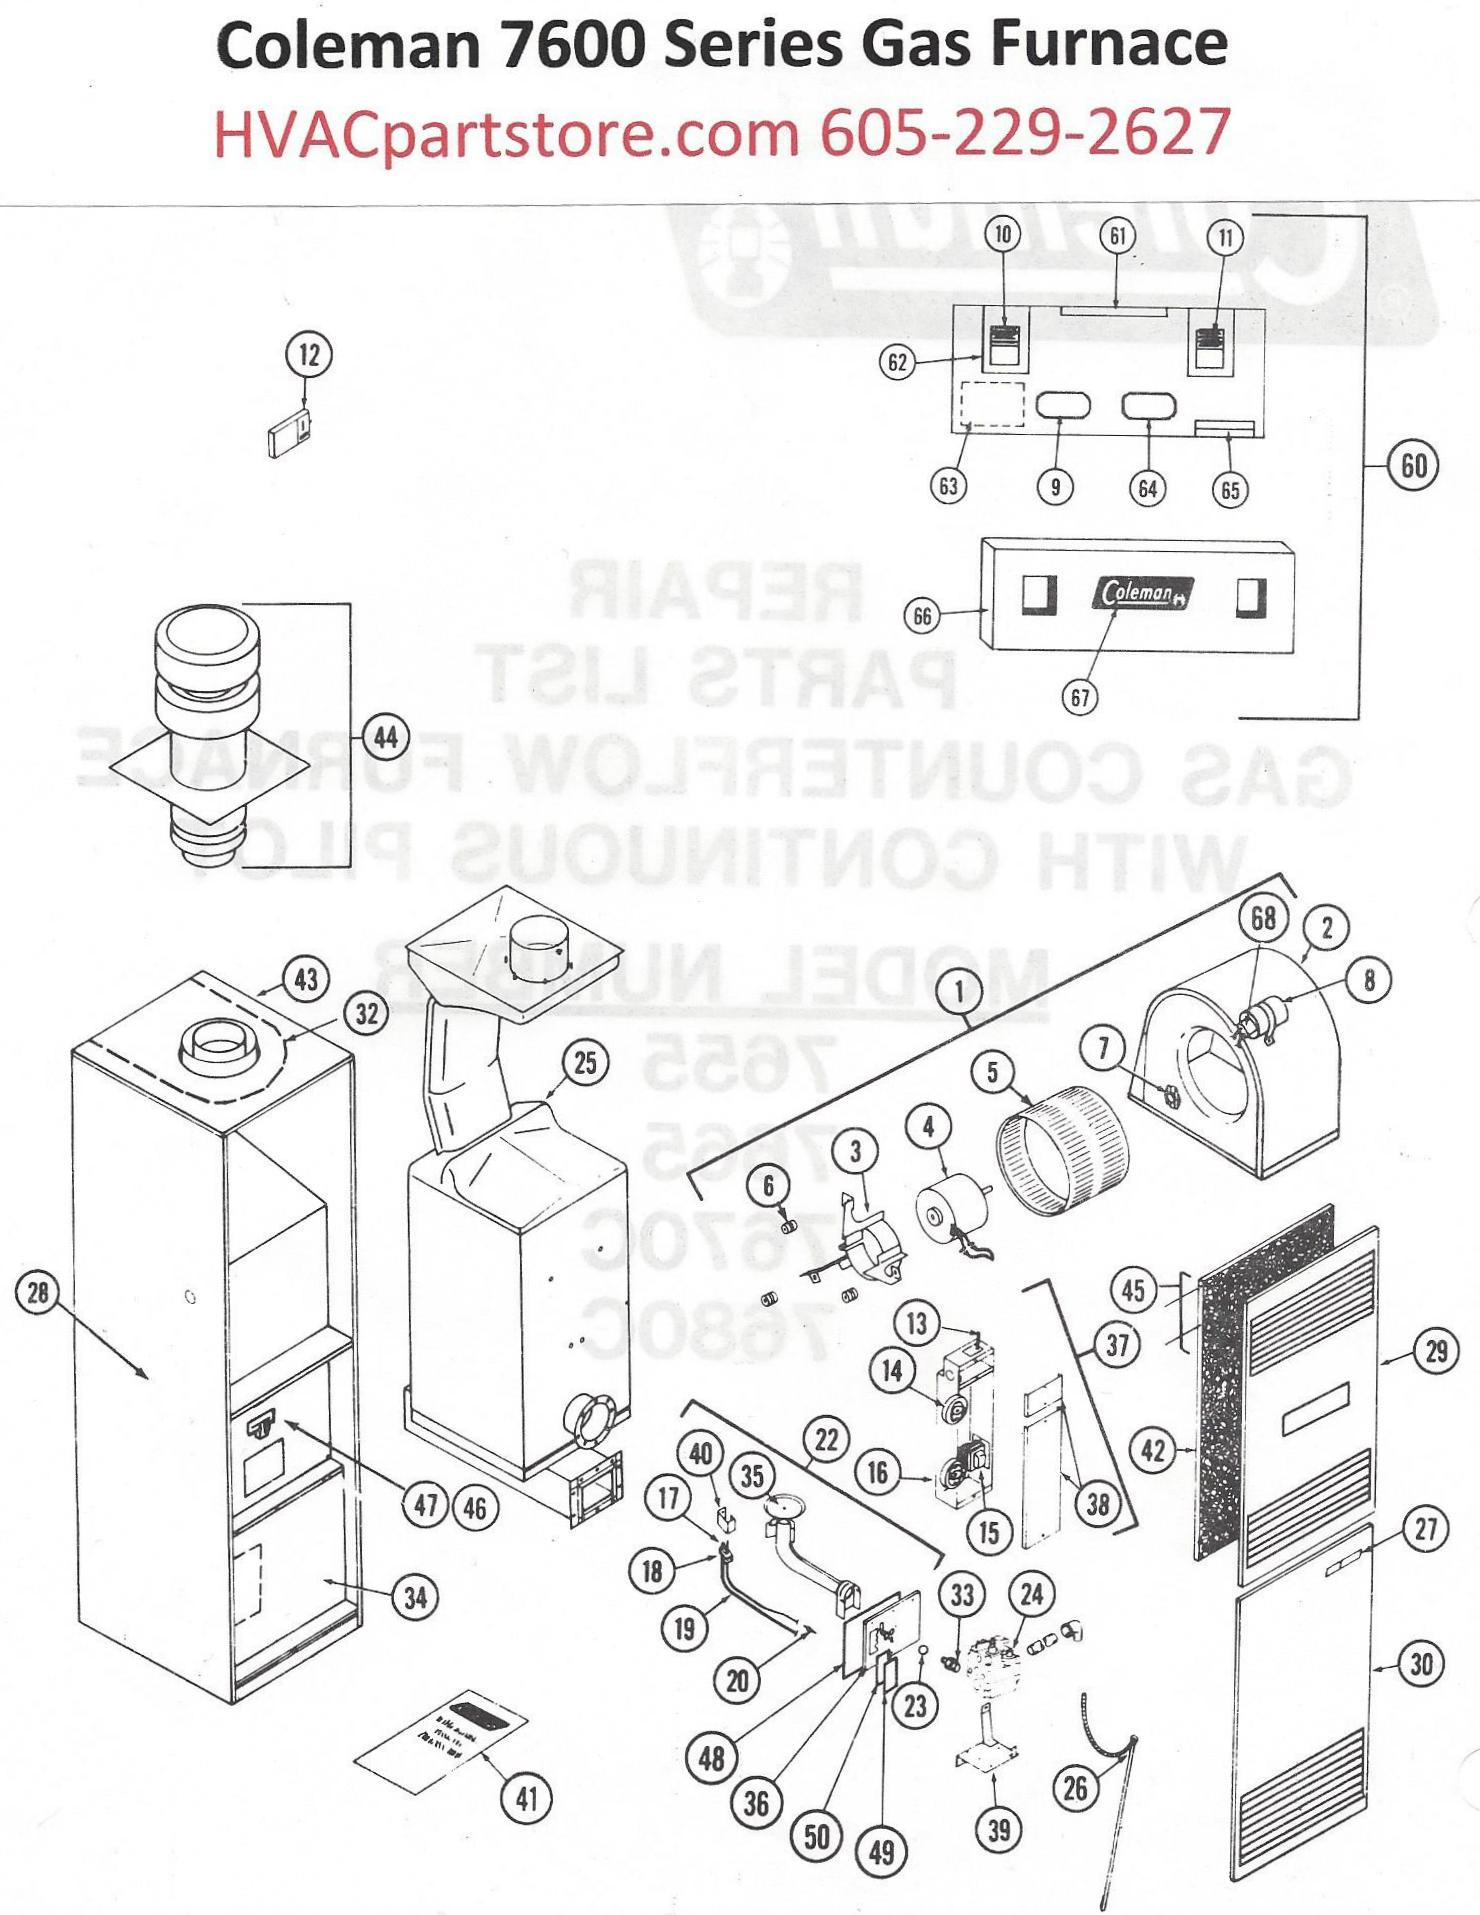 7655 856 coleman gas furnace parts hvacpartstore click here to view a manual for the coleman 7655 856 which includes wiring diagrams asfbconference2016 Gallery